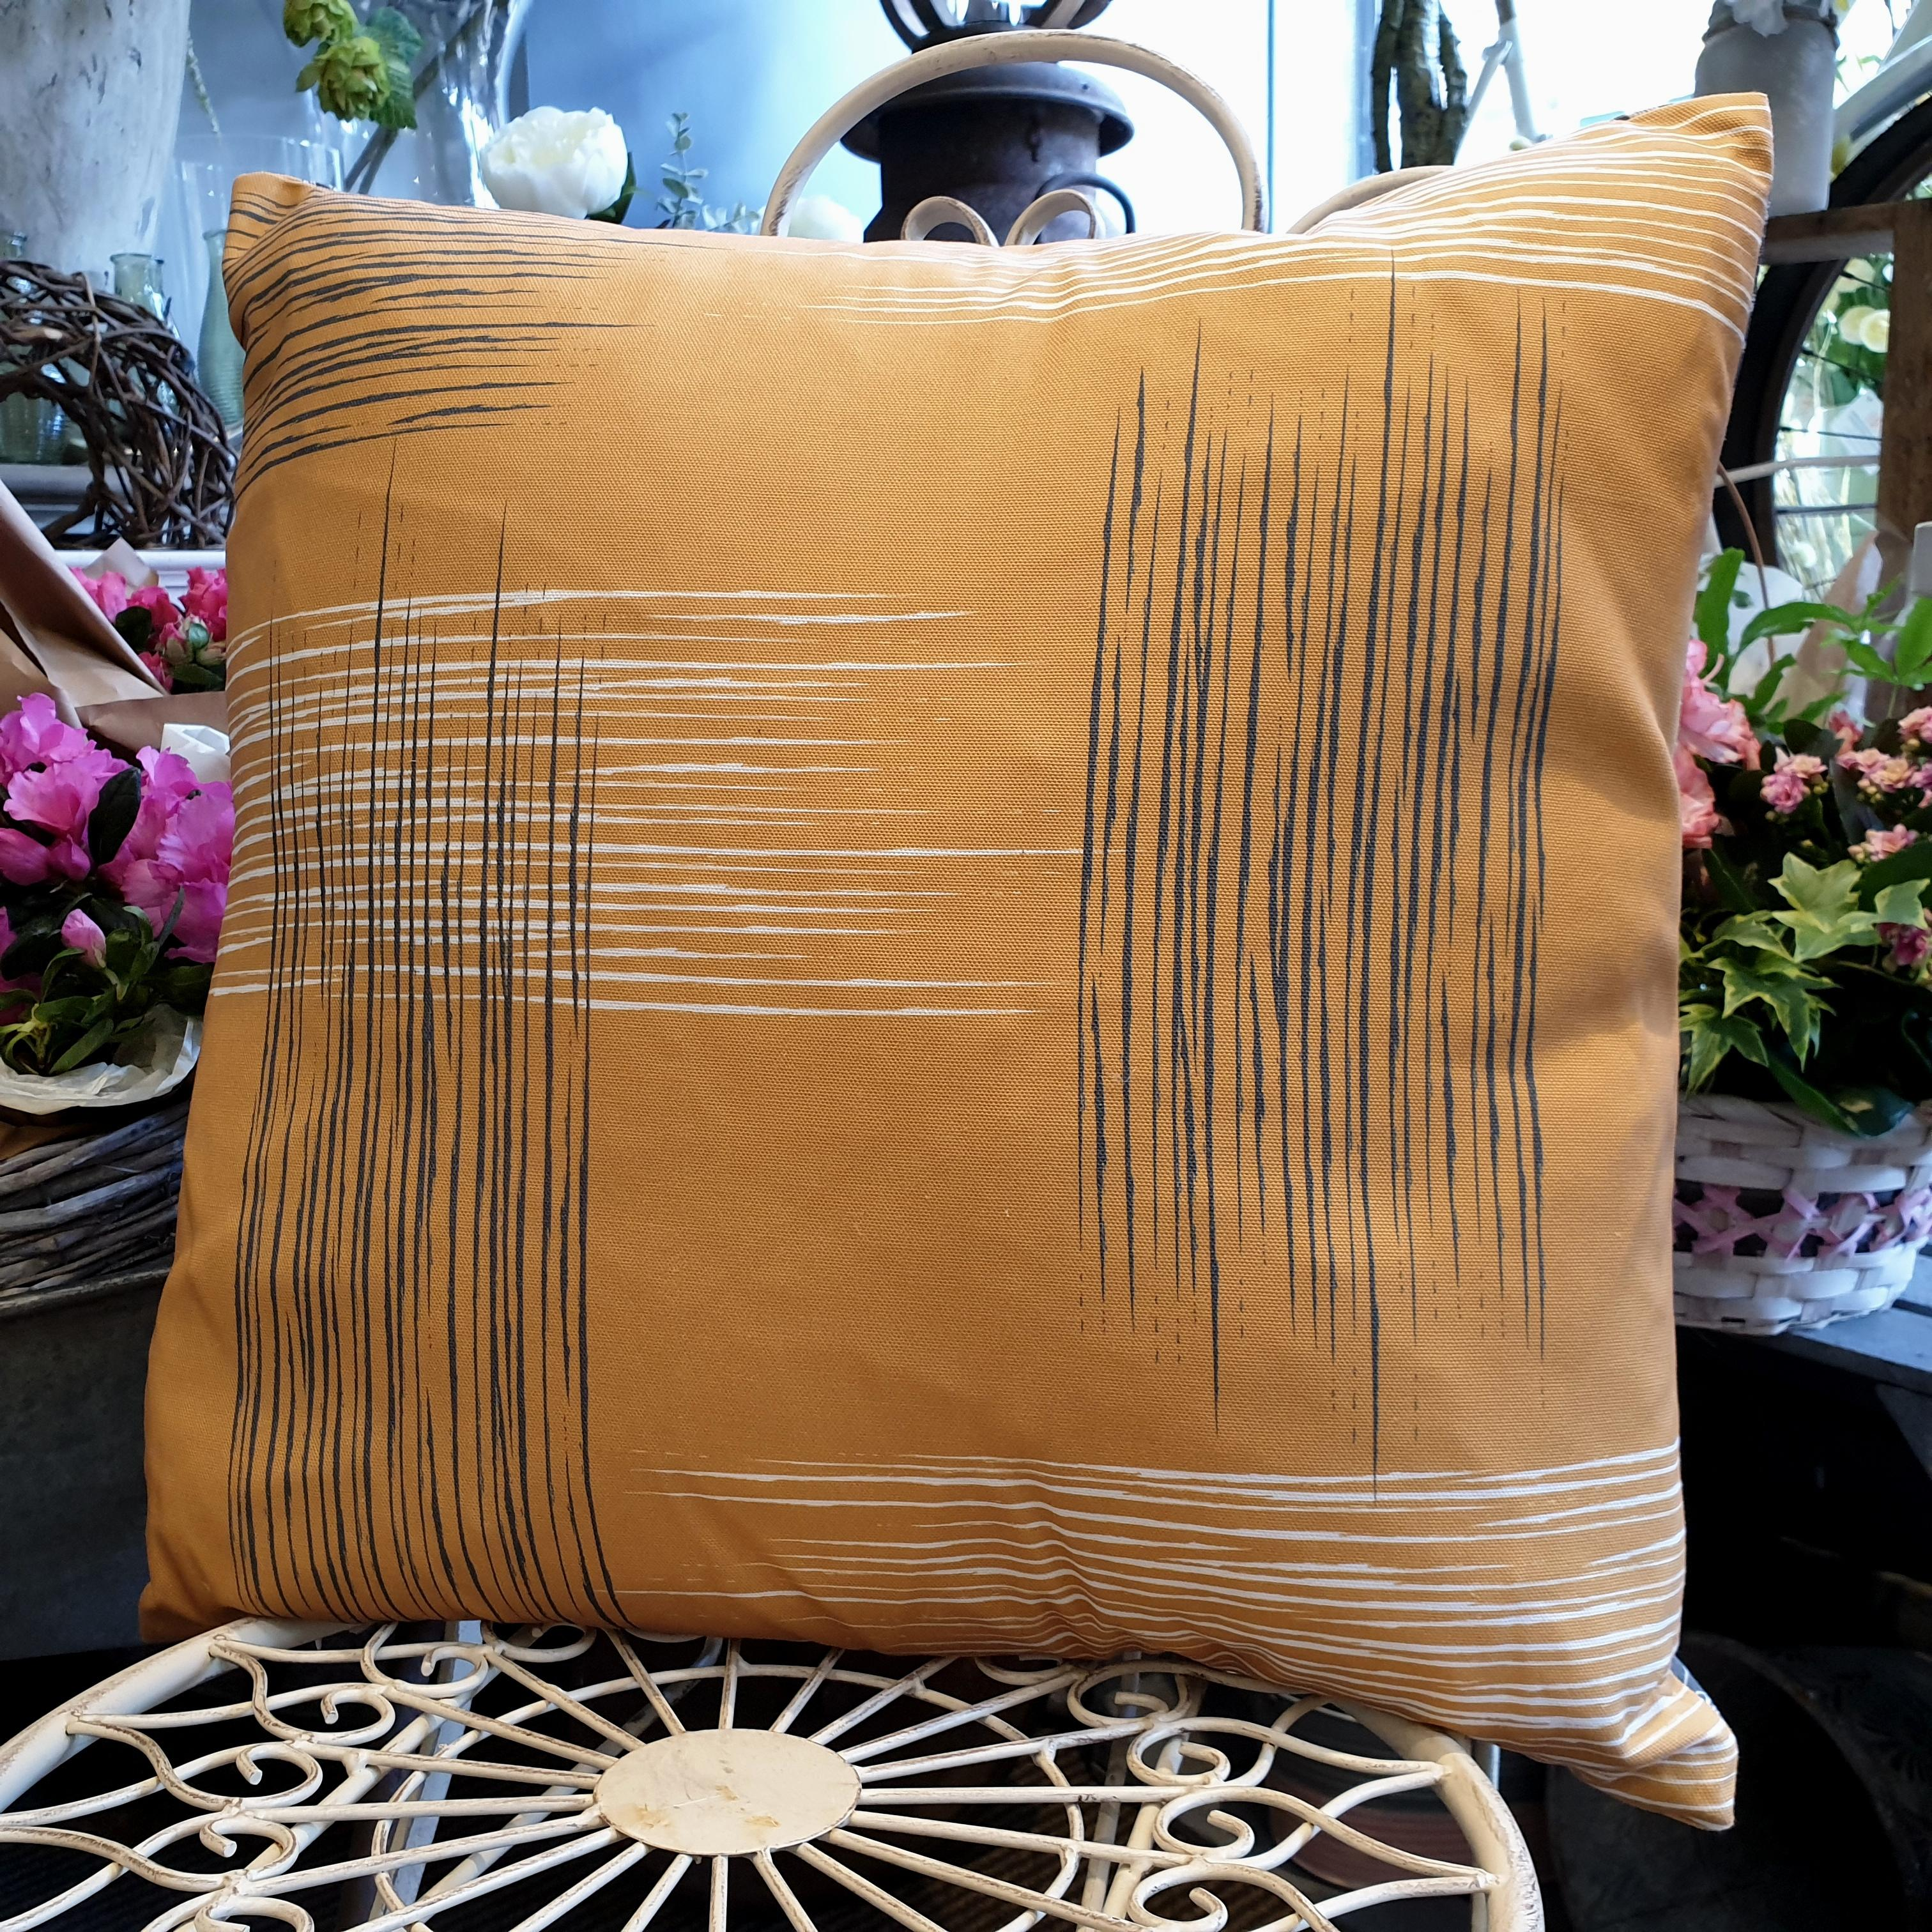 Double-sided mustard yellow 51cm square retro themed cushion with artistic grey and white shards designed by thetinkan. Available with an optional luxury cushion inner pad. VIEW PRODUCT >>